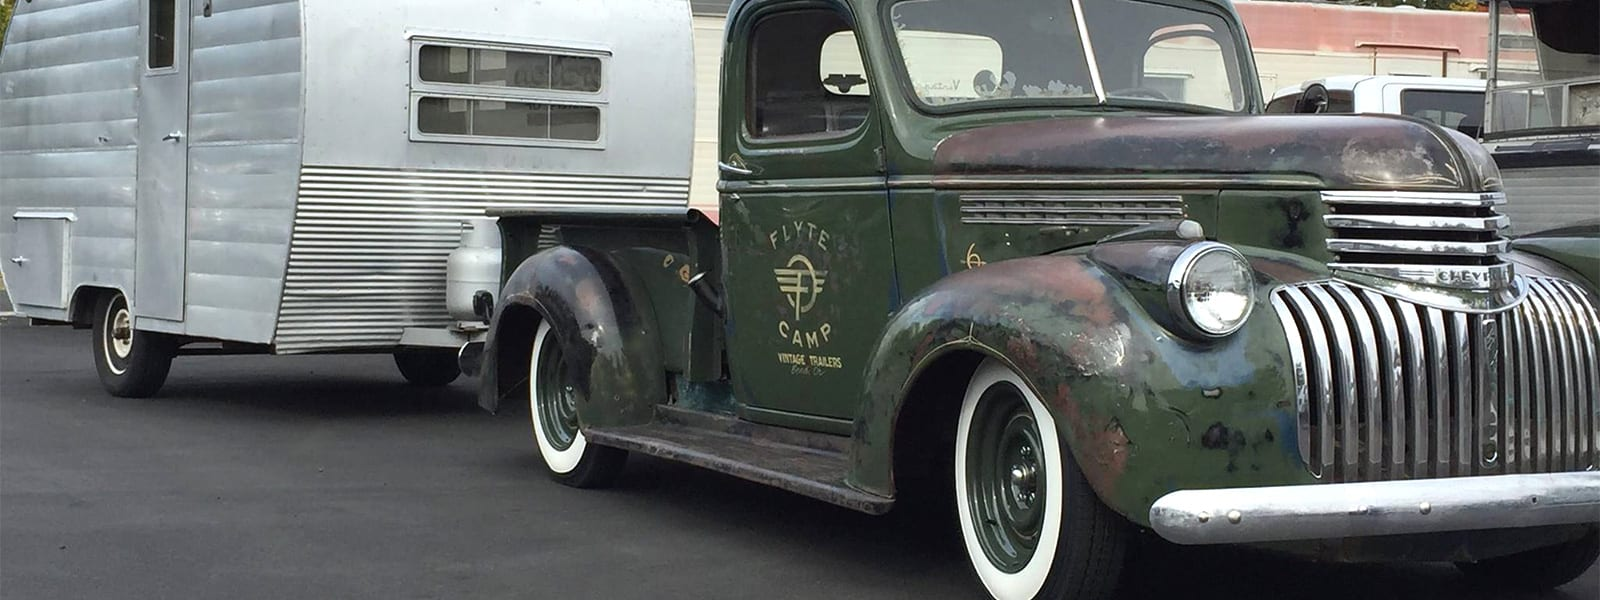 1946 Chevy pickup Flippin RV's